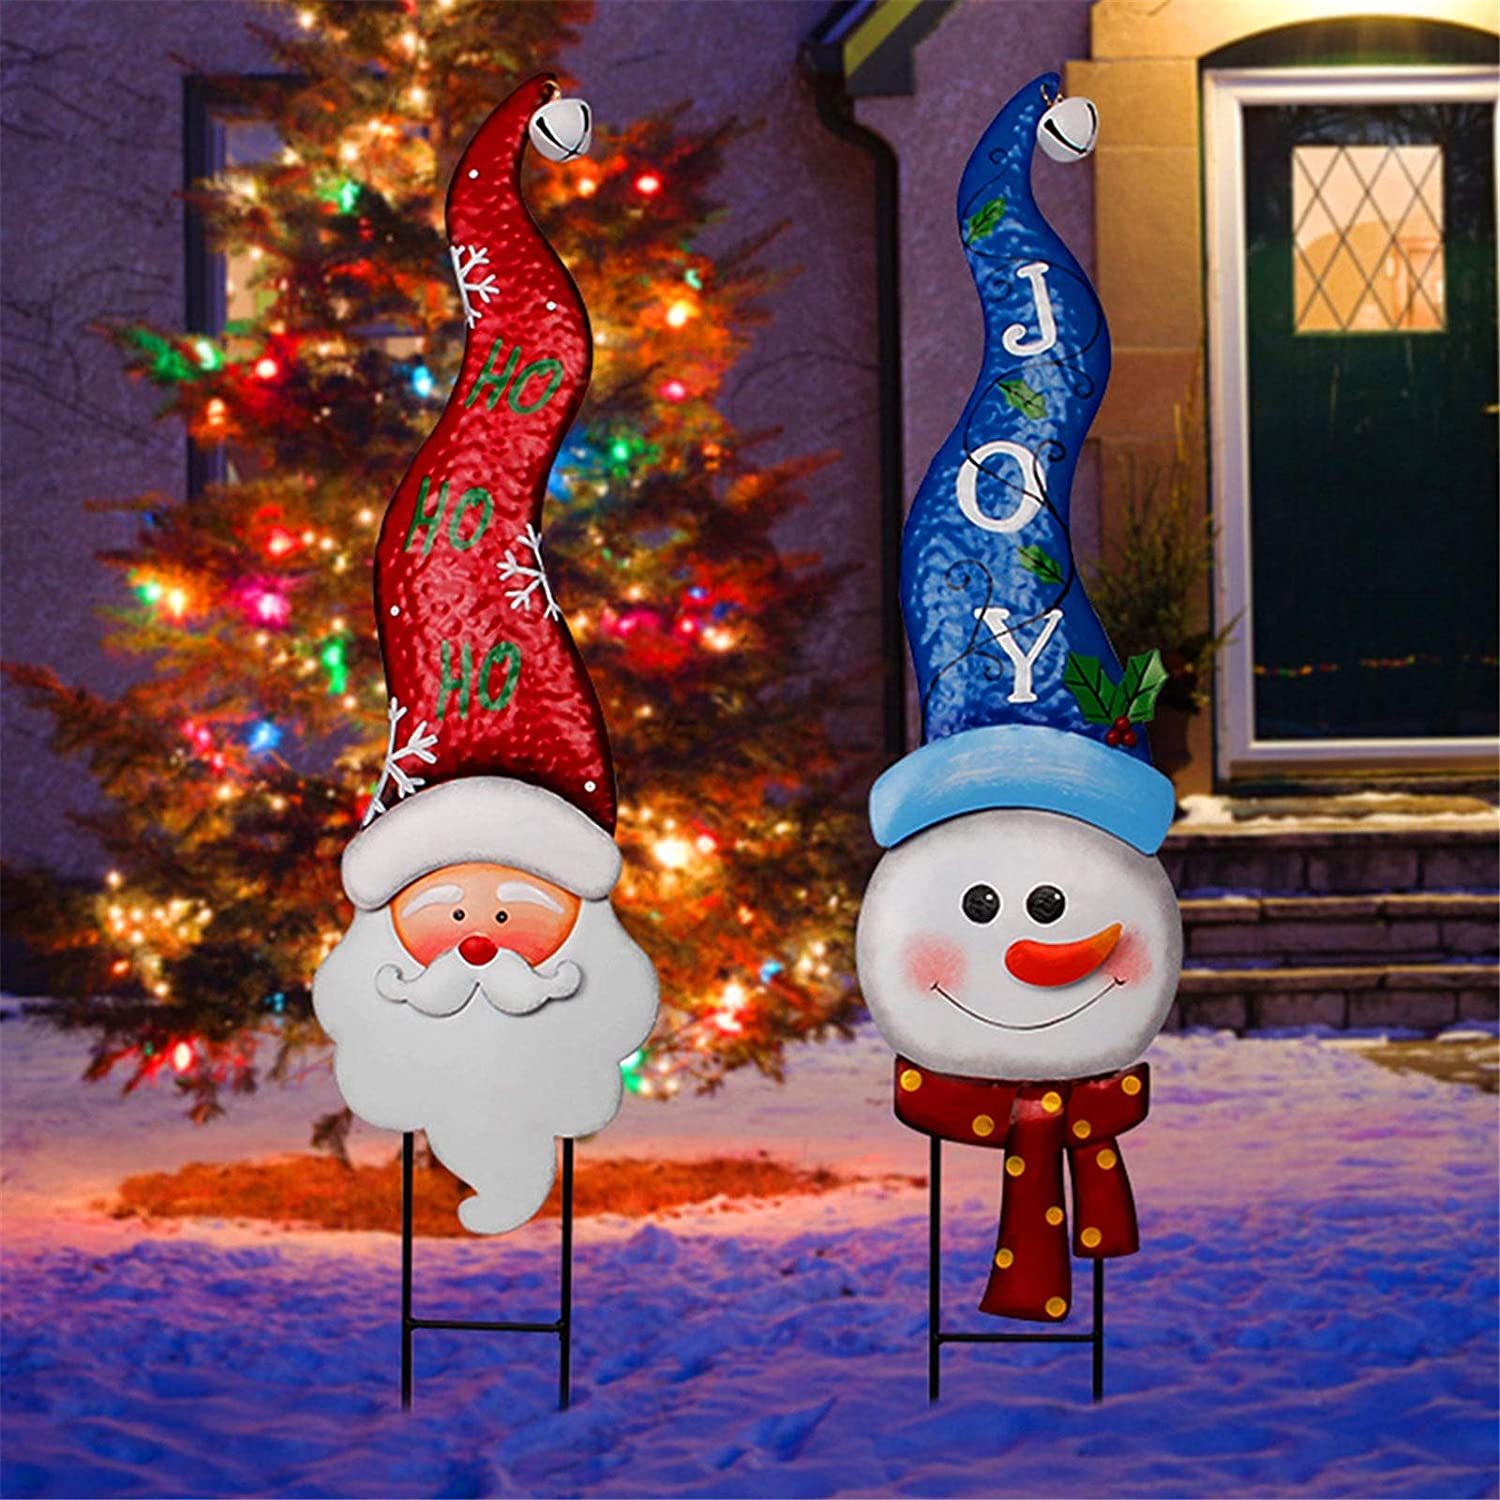 Maggift 2 Pack Christmas Metal Stakes With Tinkle Bell Metal Snowman And Santa Claus Garden Decor For Outdoor Decorations Stake Decorative 3d Snowmen Welcome Yard Lawn Pathway Driveway Signs Garden